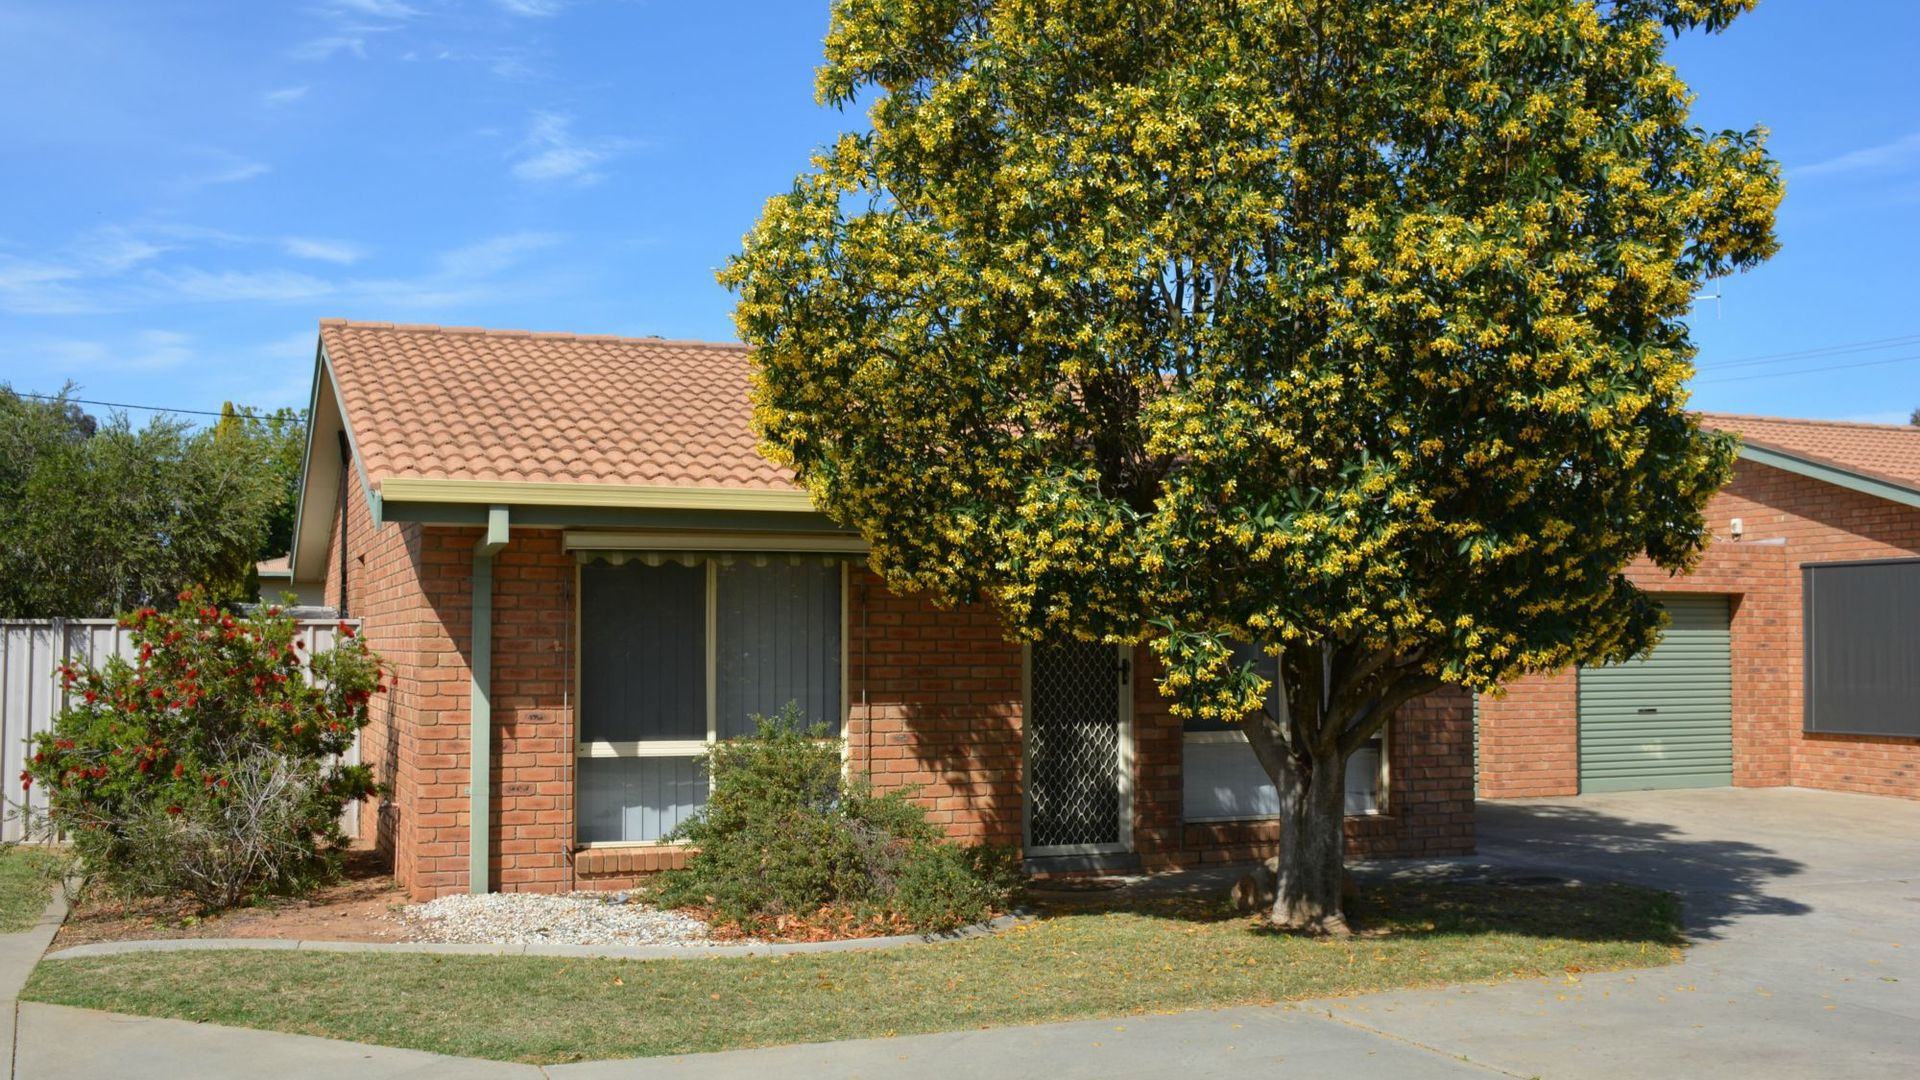 5/58-60 Collie Street, Barooga NSW 3644, Image 1